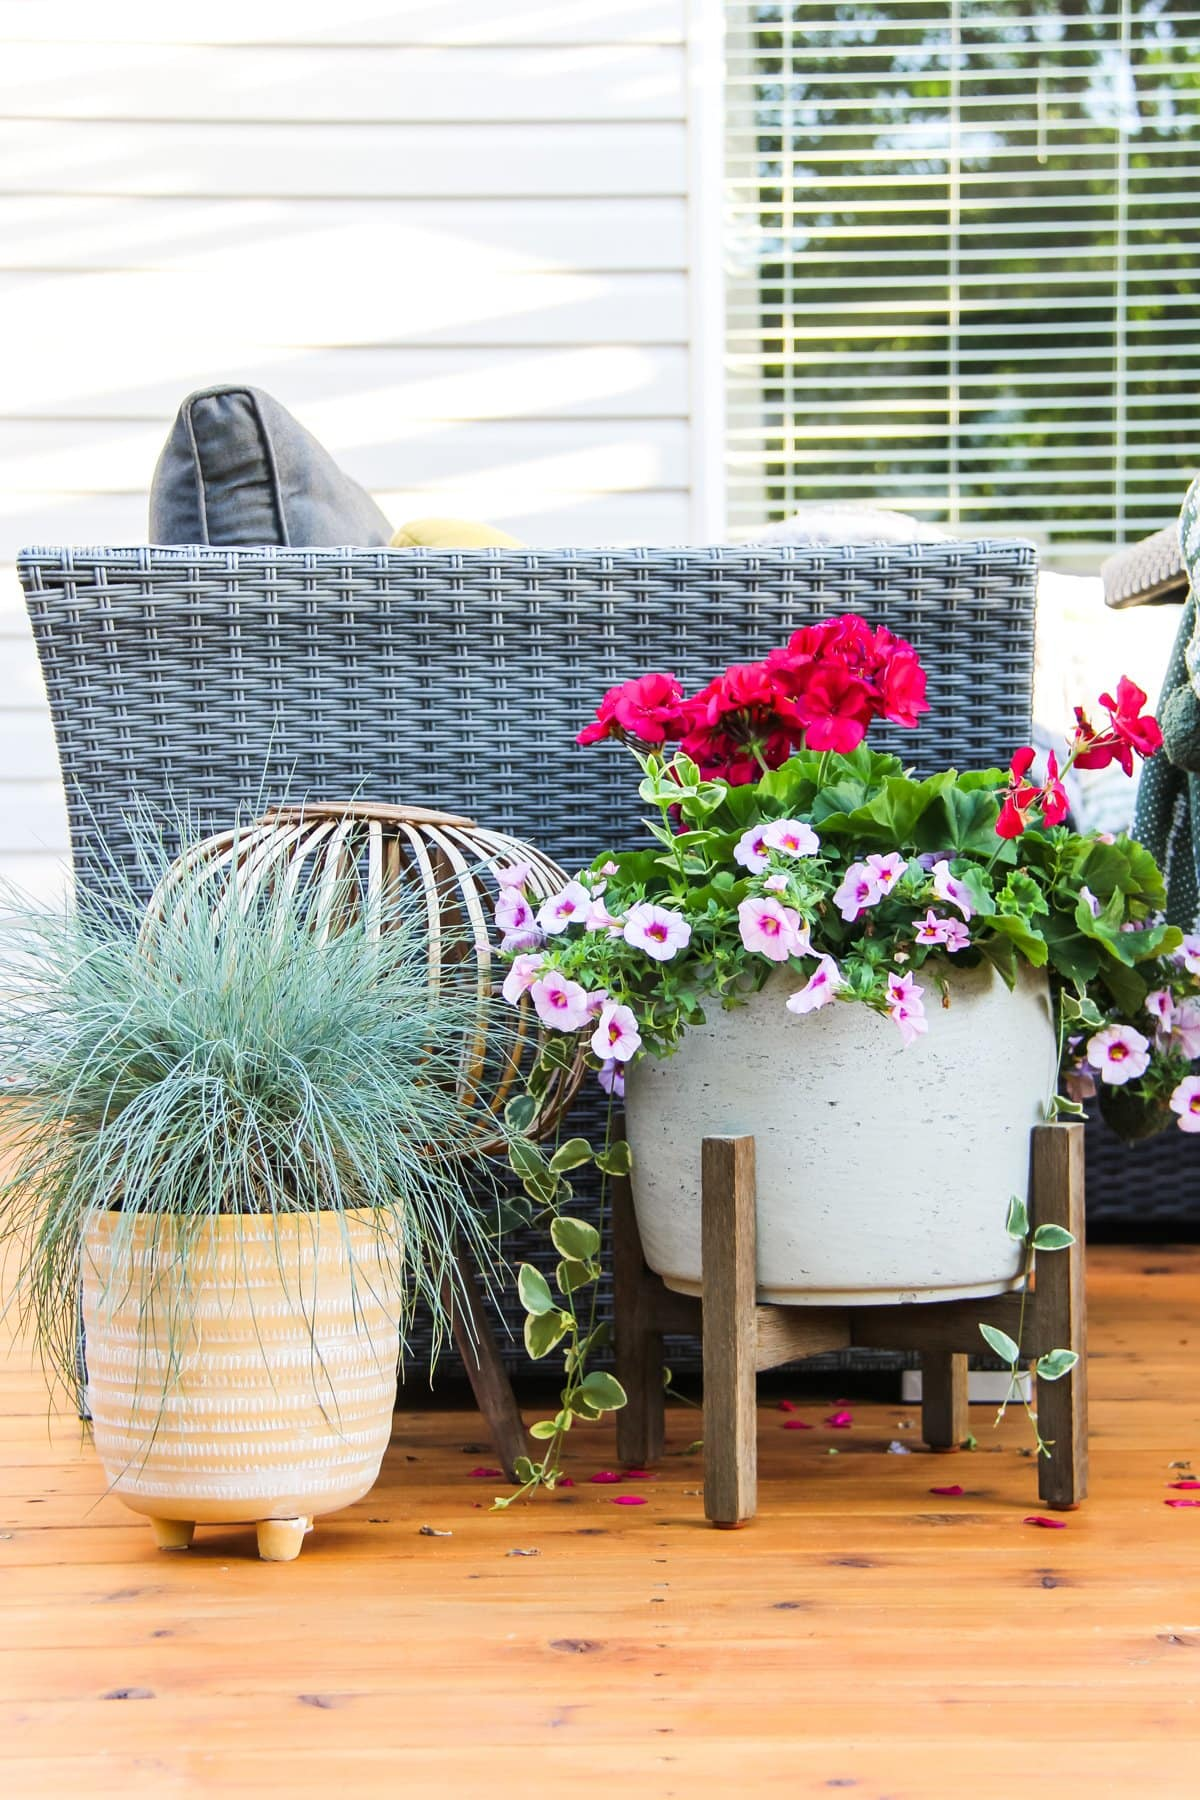 a planter of bluegrass, a planter of pink flowers and a wicker candle holder